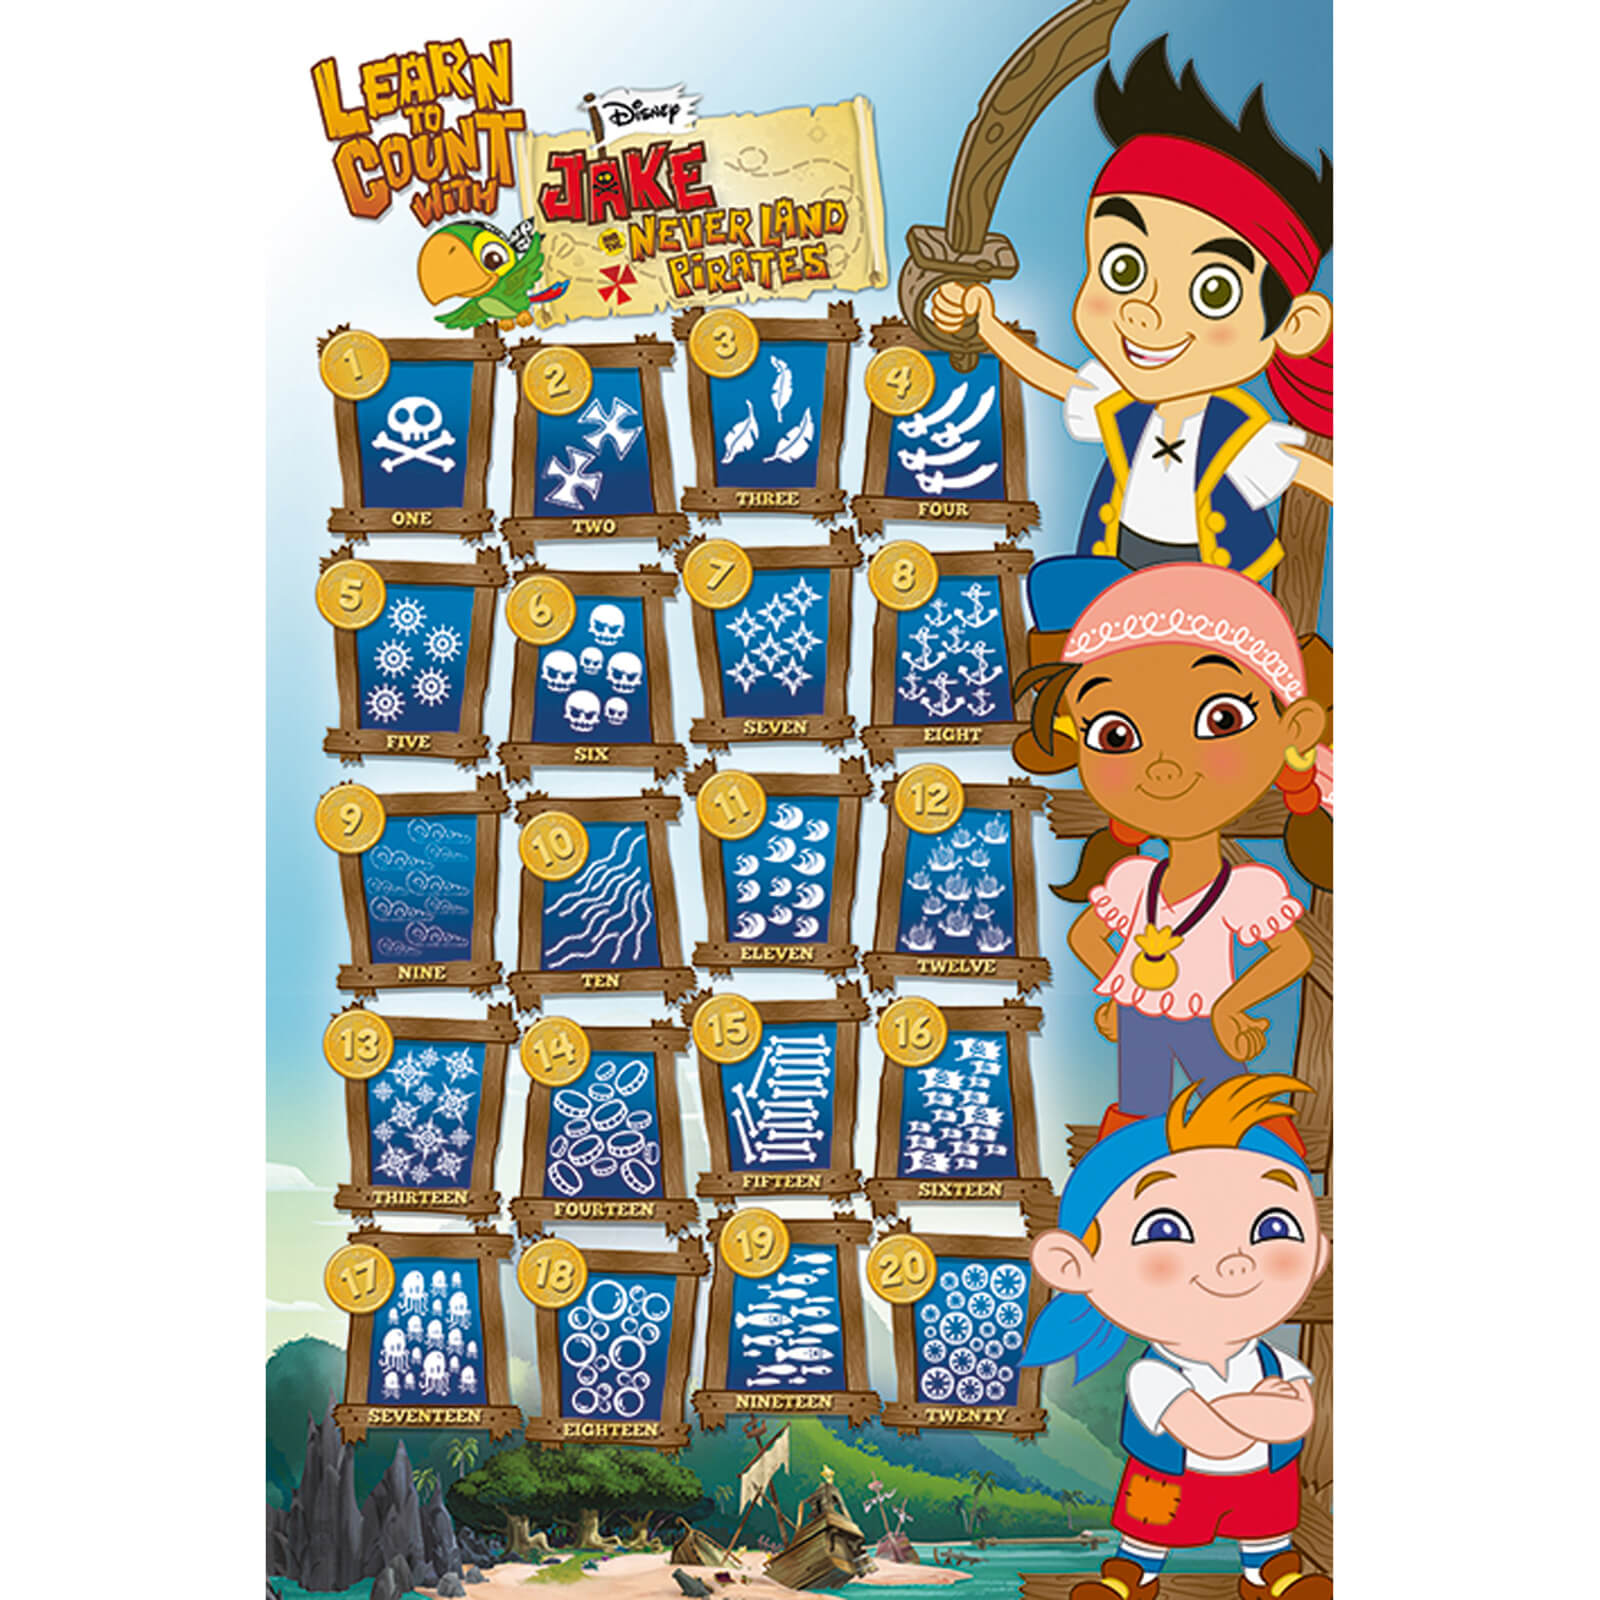 Jake and the Neverland Pirates Count - 61 x 91.5cm Maxi Poster